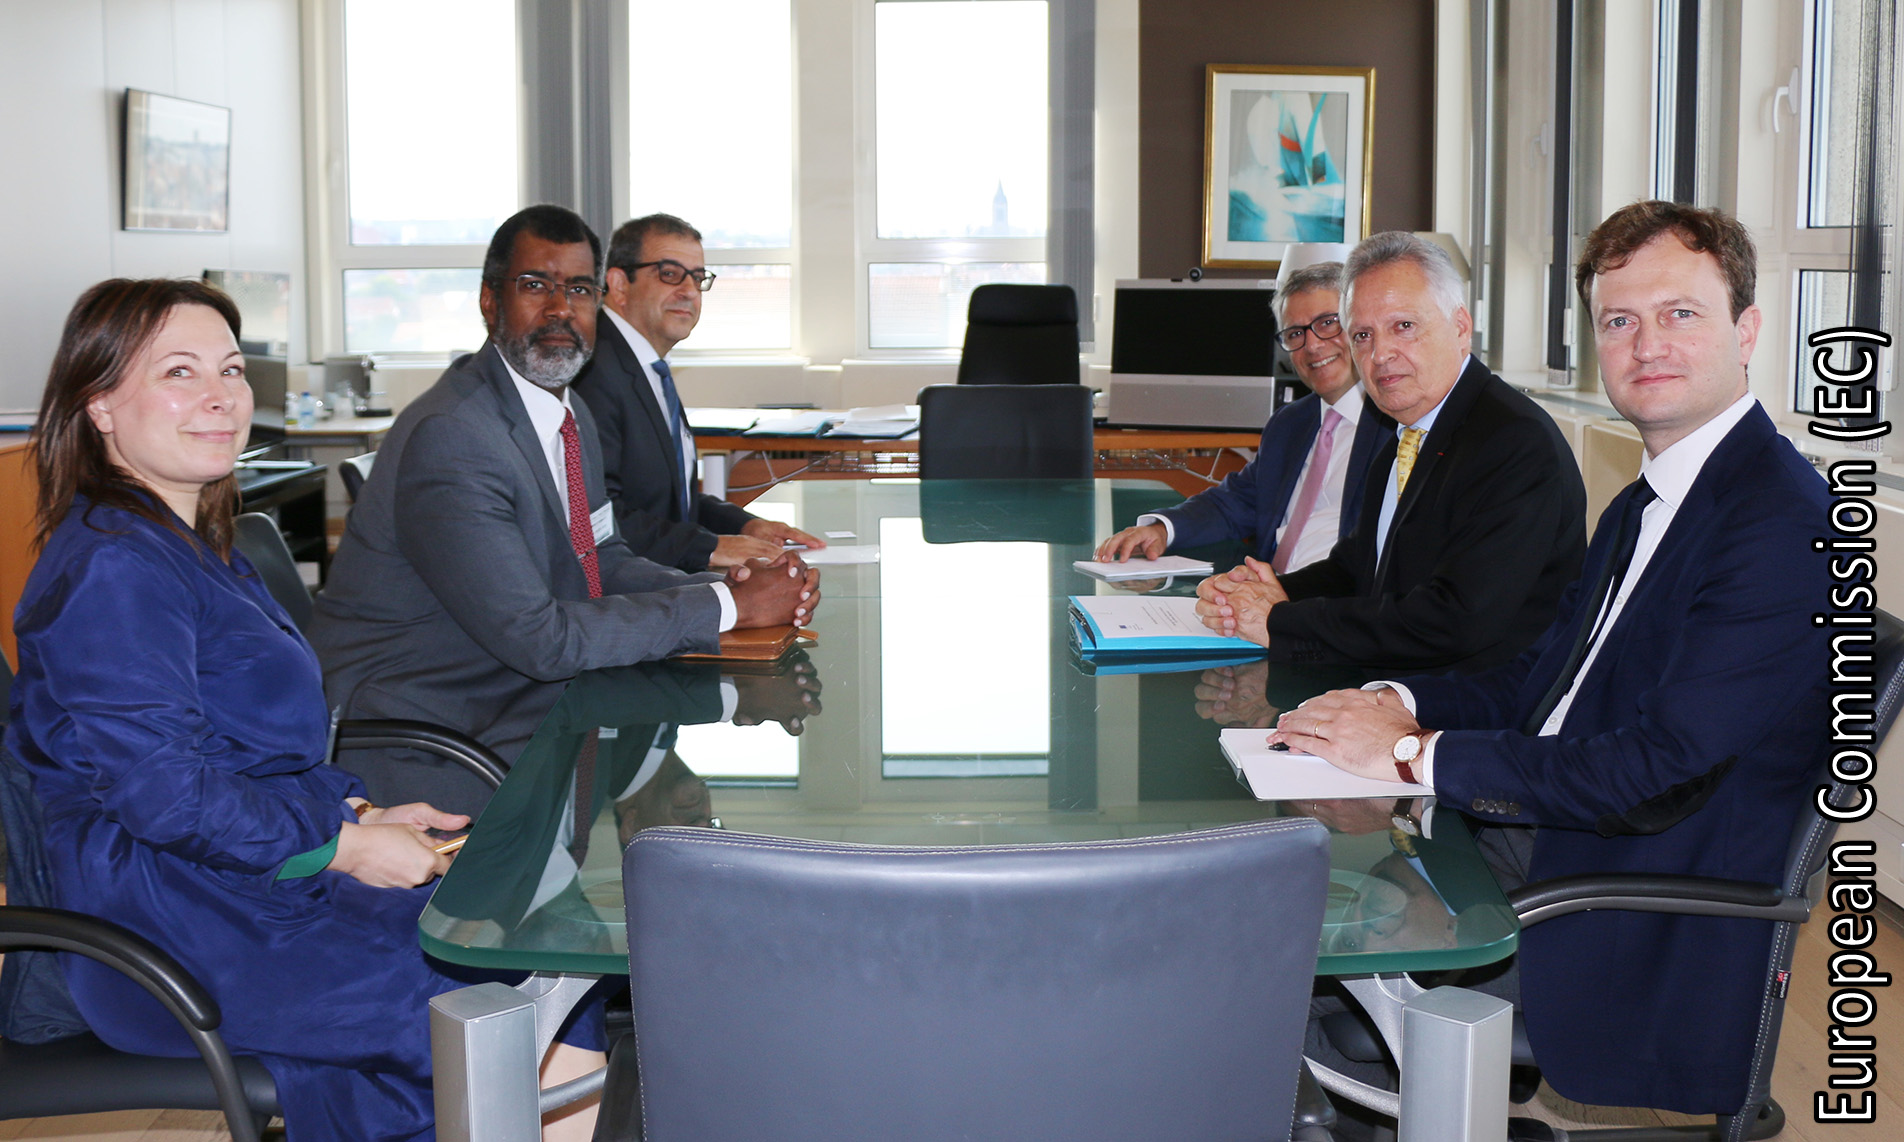 NEA Director-General William D. Magwood, IV, met with the European Commission Director-General Dominique Ristori, 24 July 2018